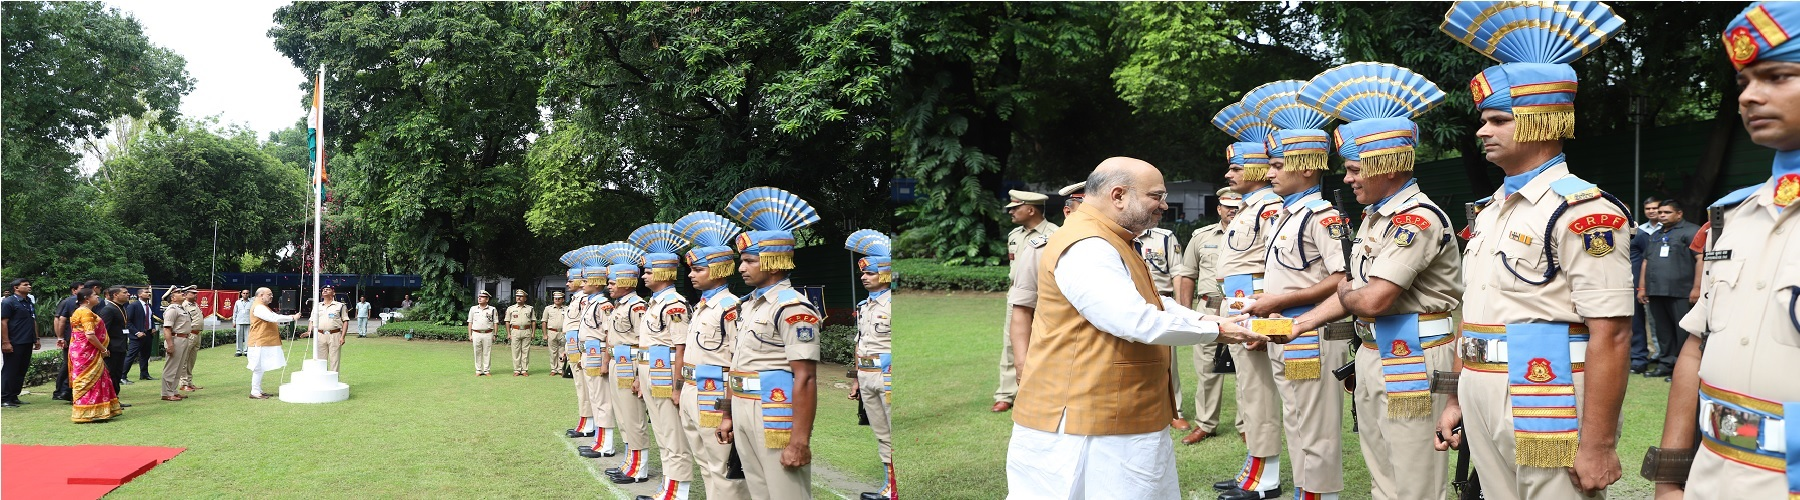 Union Minister for Home Affairs Shri Amit Shah celebrates Independence Day at his official residence and receives a Guard of Honour in New Delhi on August 15, 2019.